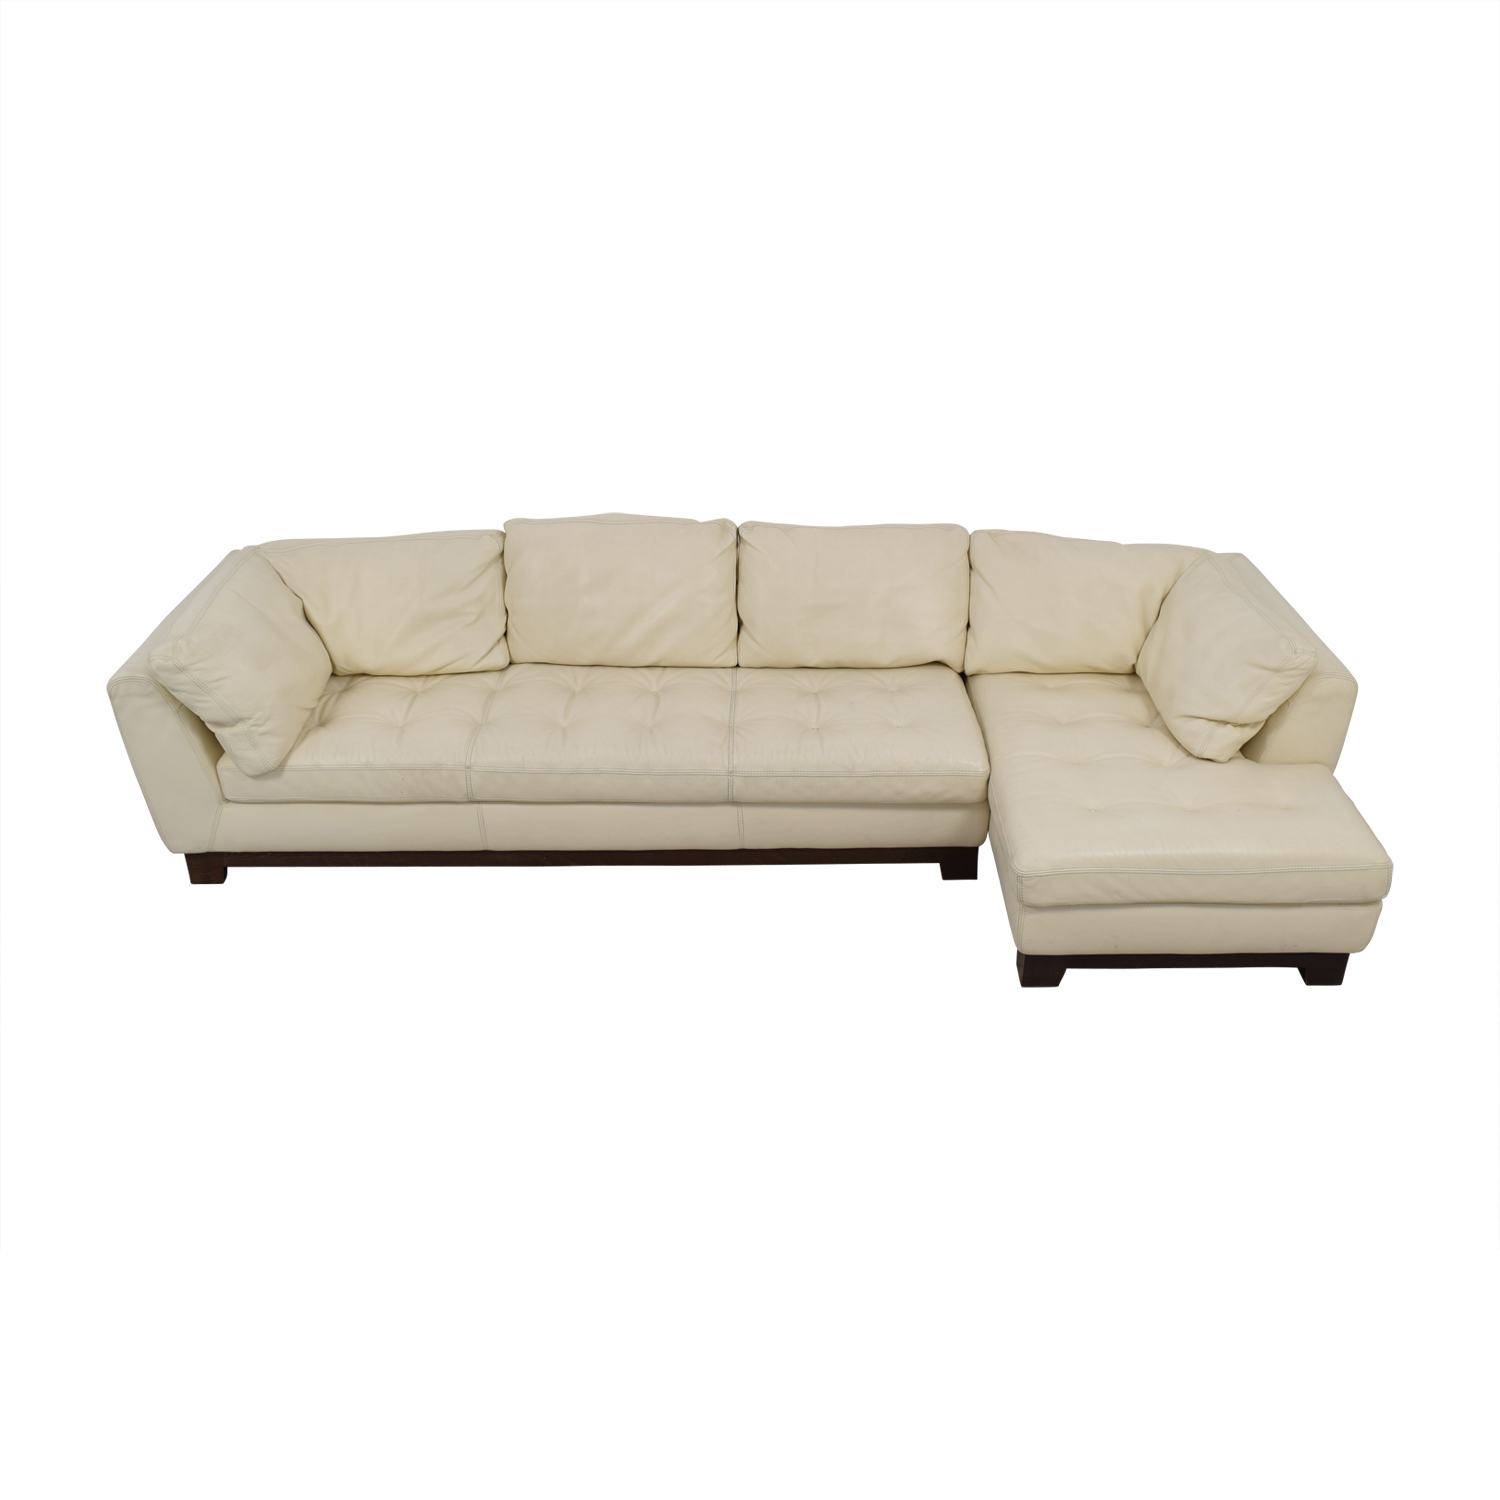 Roche Bobois Chaises 89 Off Roche Bobois Roche Bobois Cream Leather Chaise Sectional Sofas